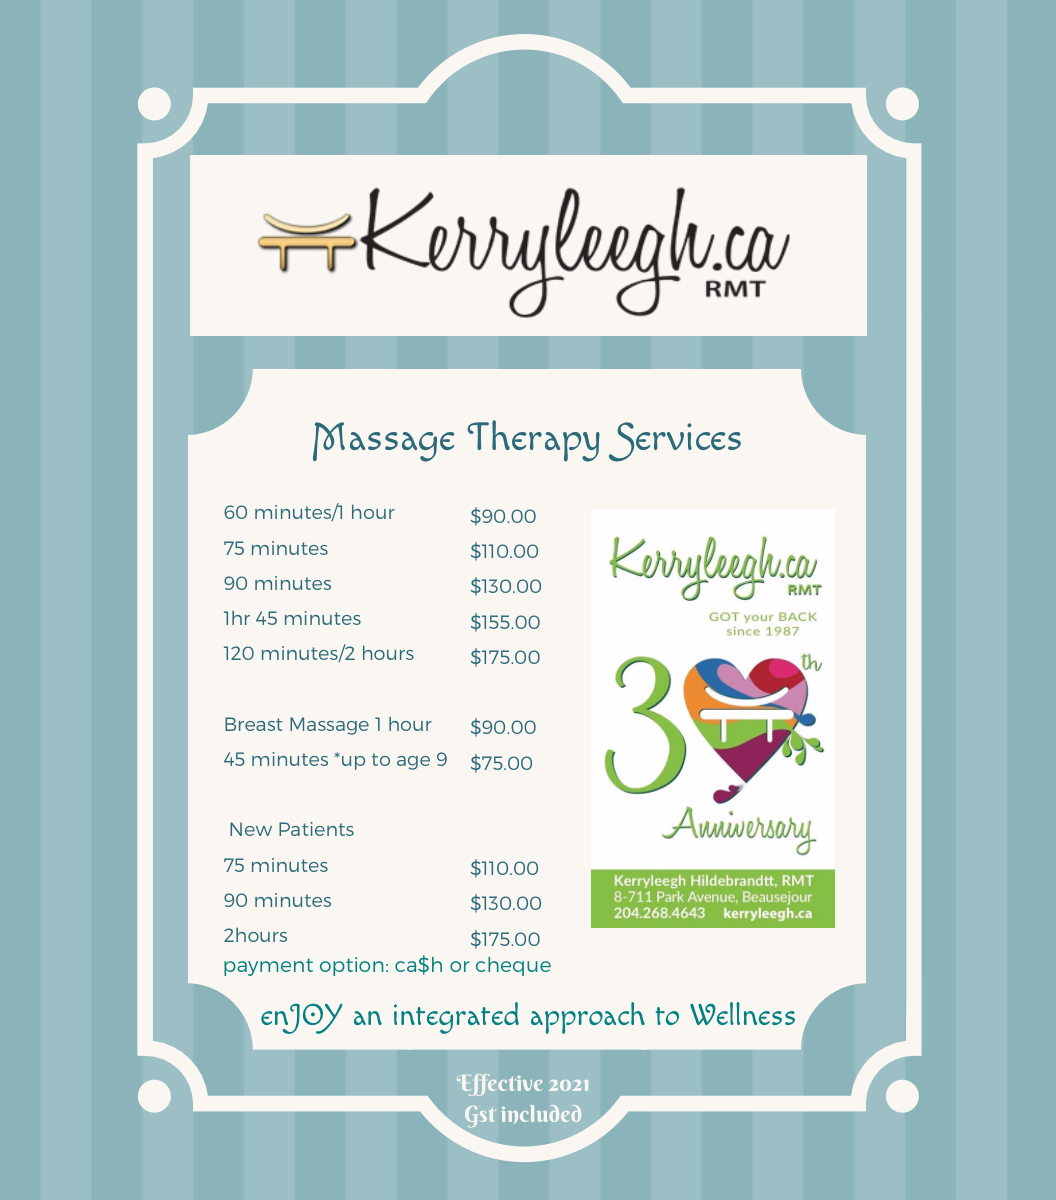 Massage Therapy Service fees 2021